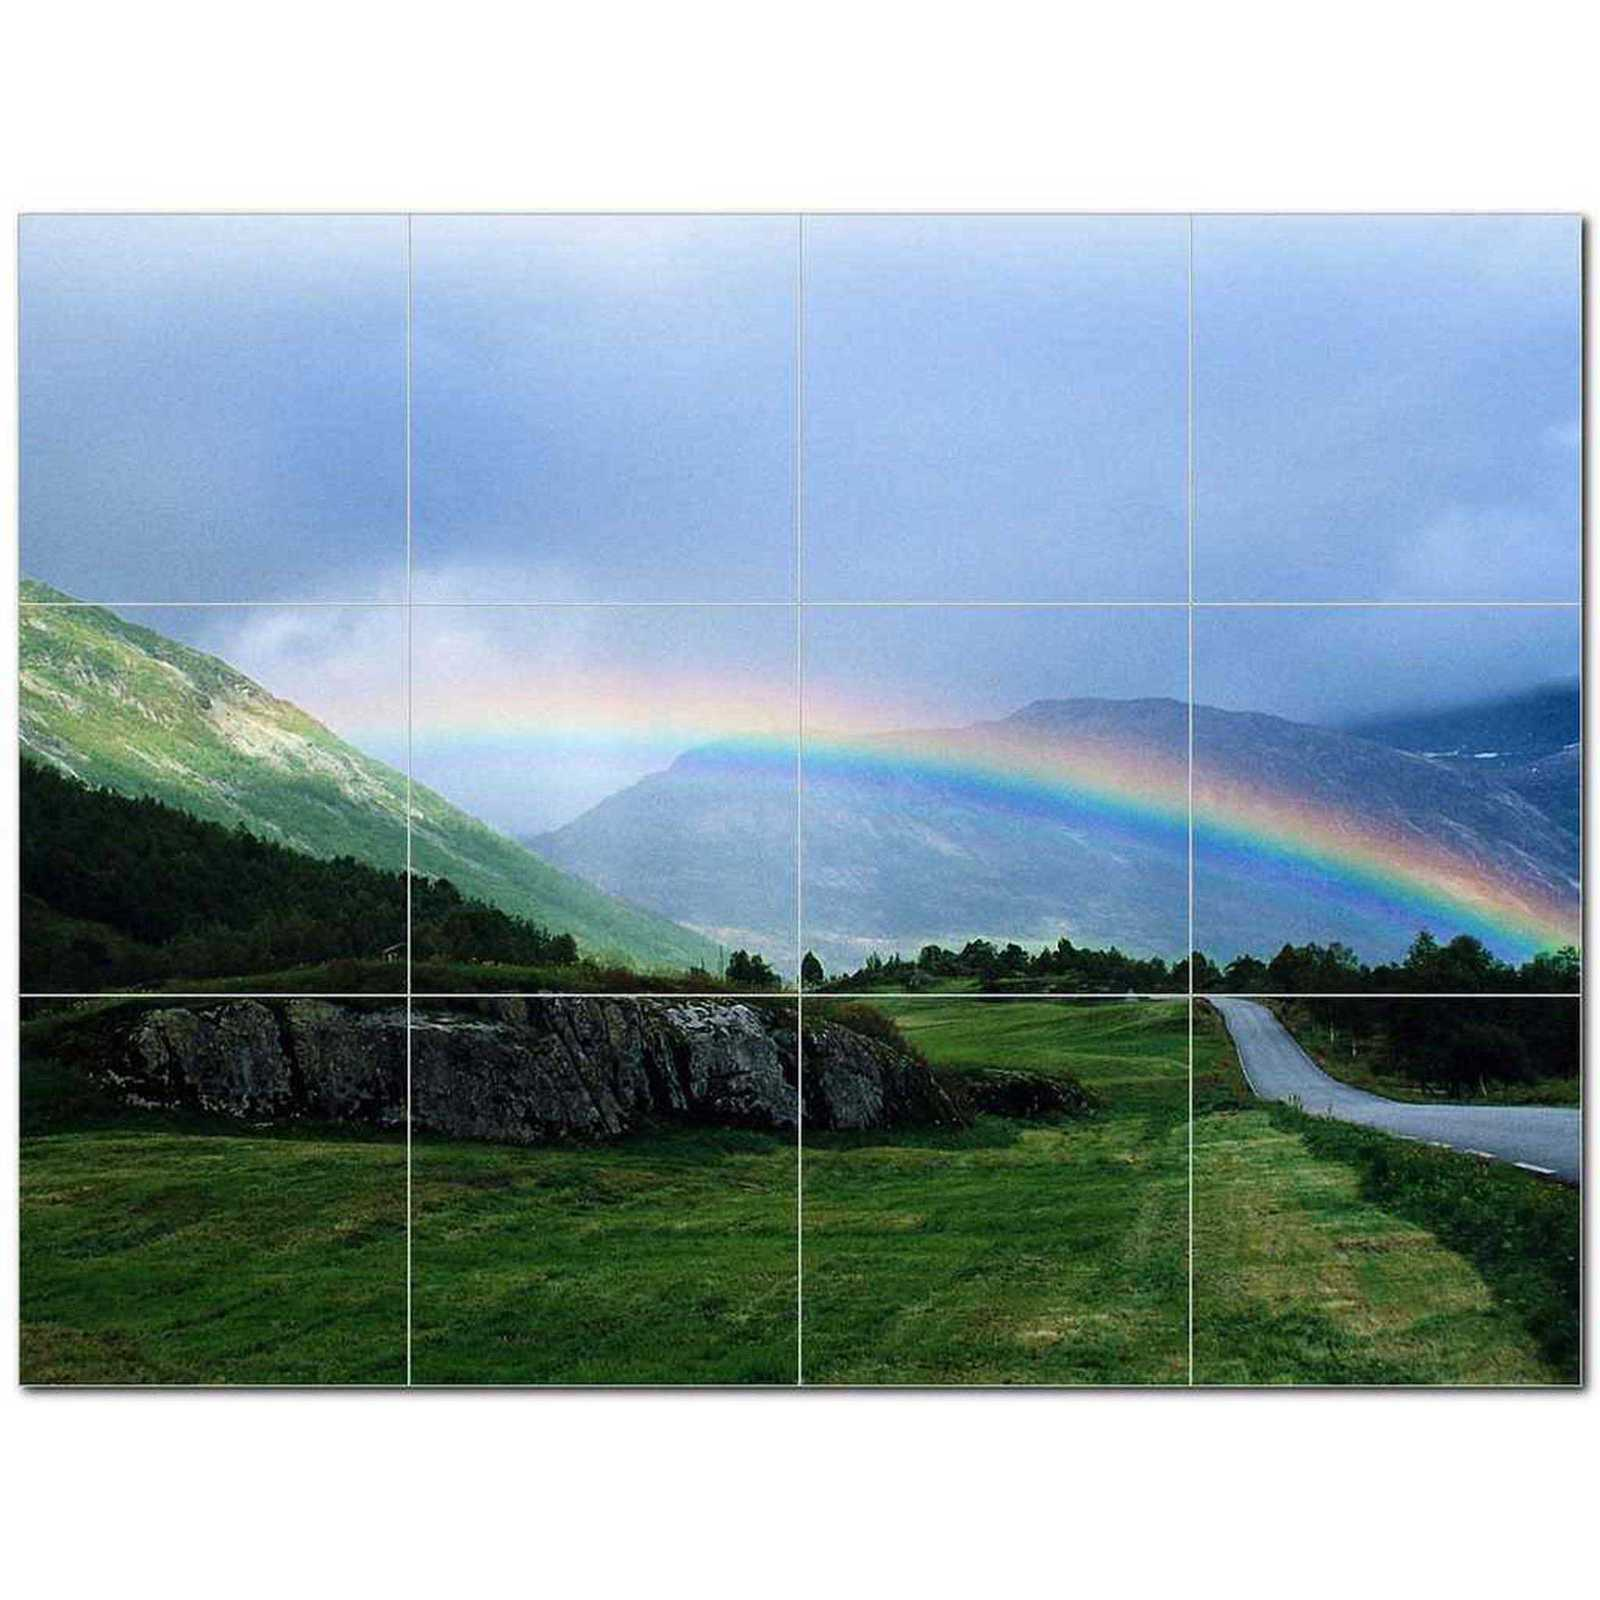 Primary image for Rainbow Photo Ceramic Tile Mural Kitchen Backsplash Bathroom Shower BAZ405694